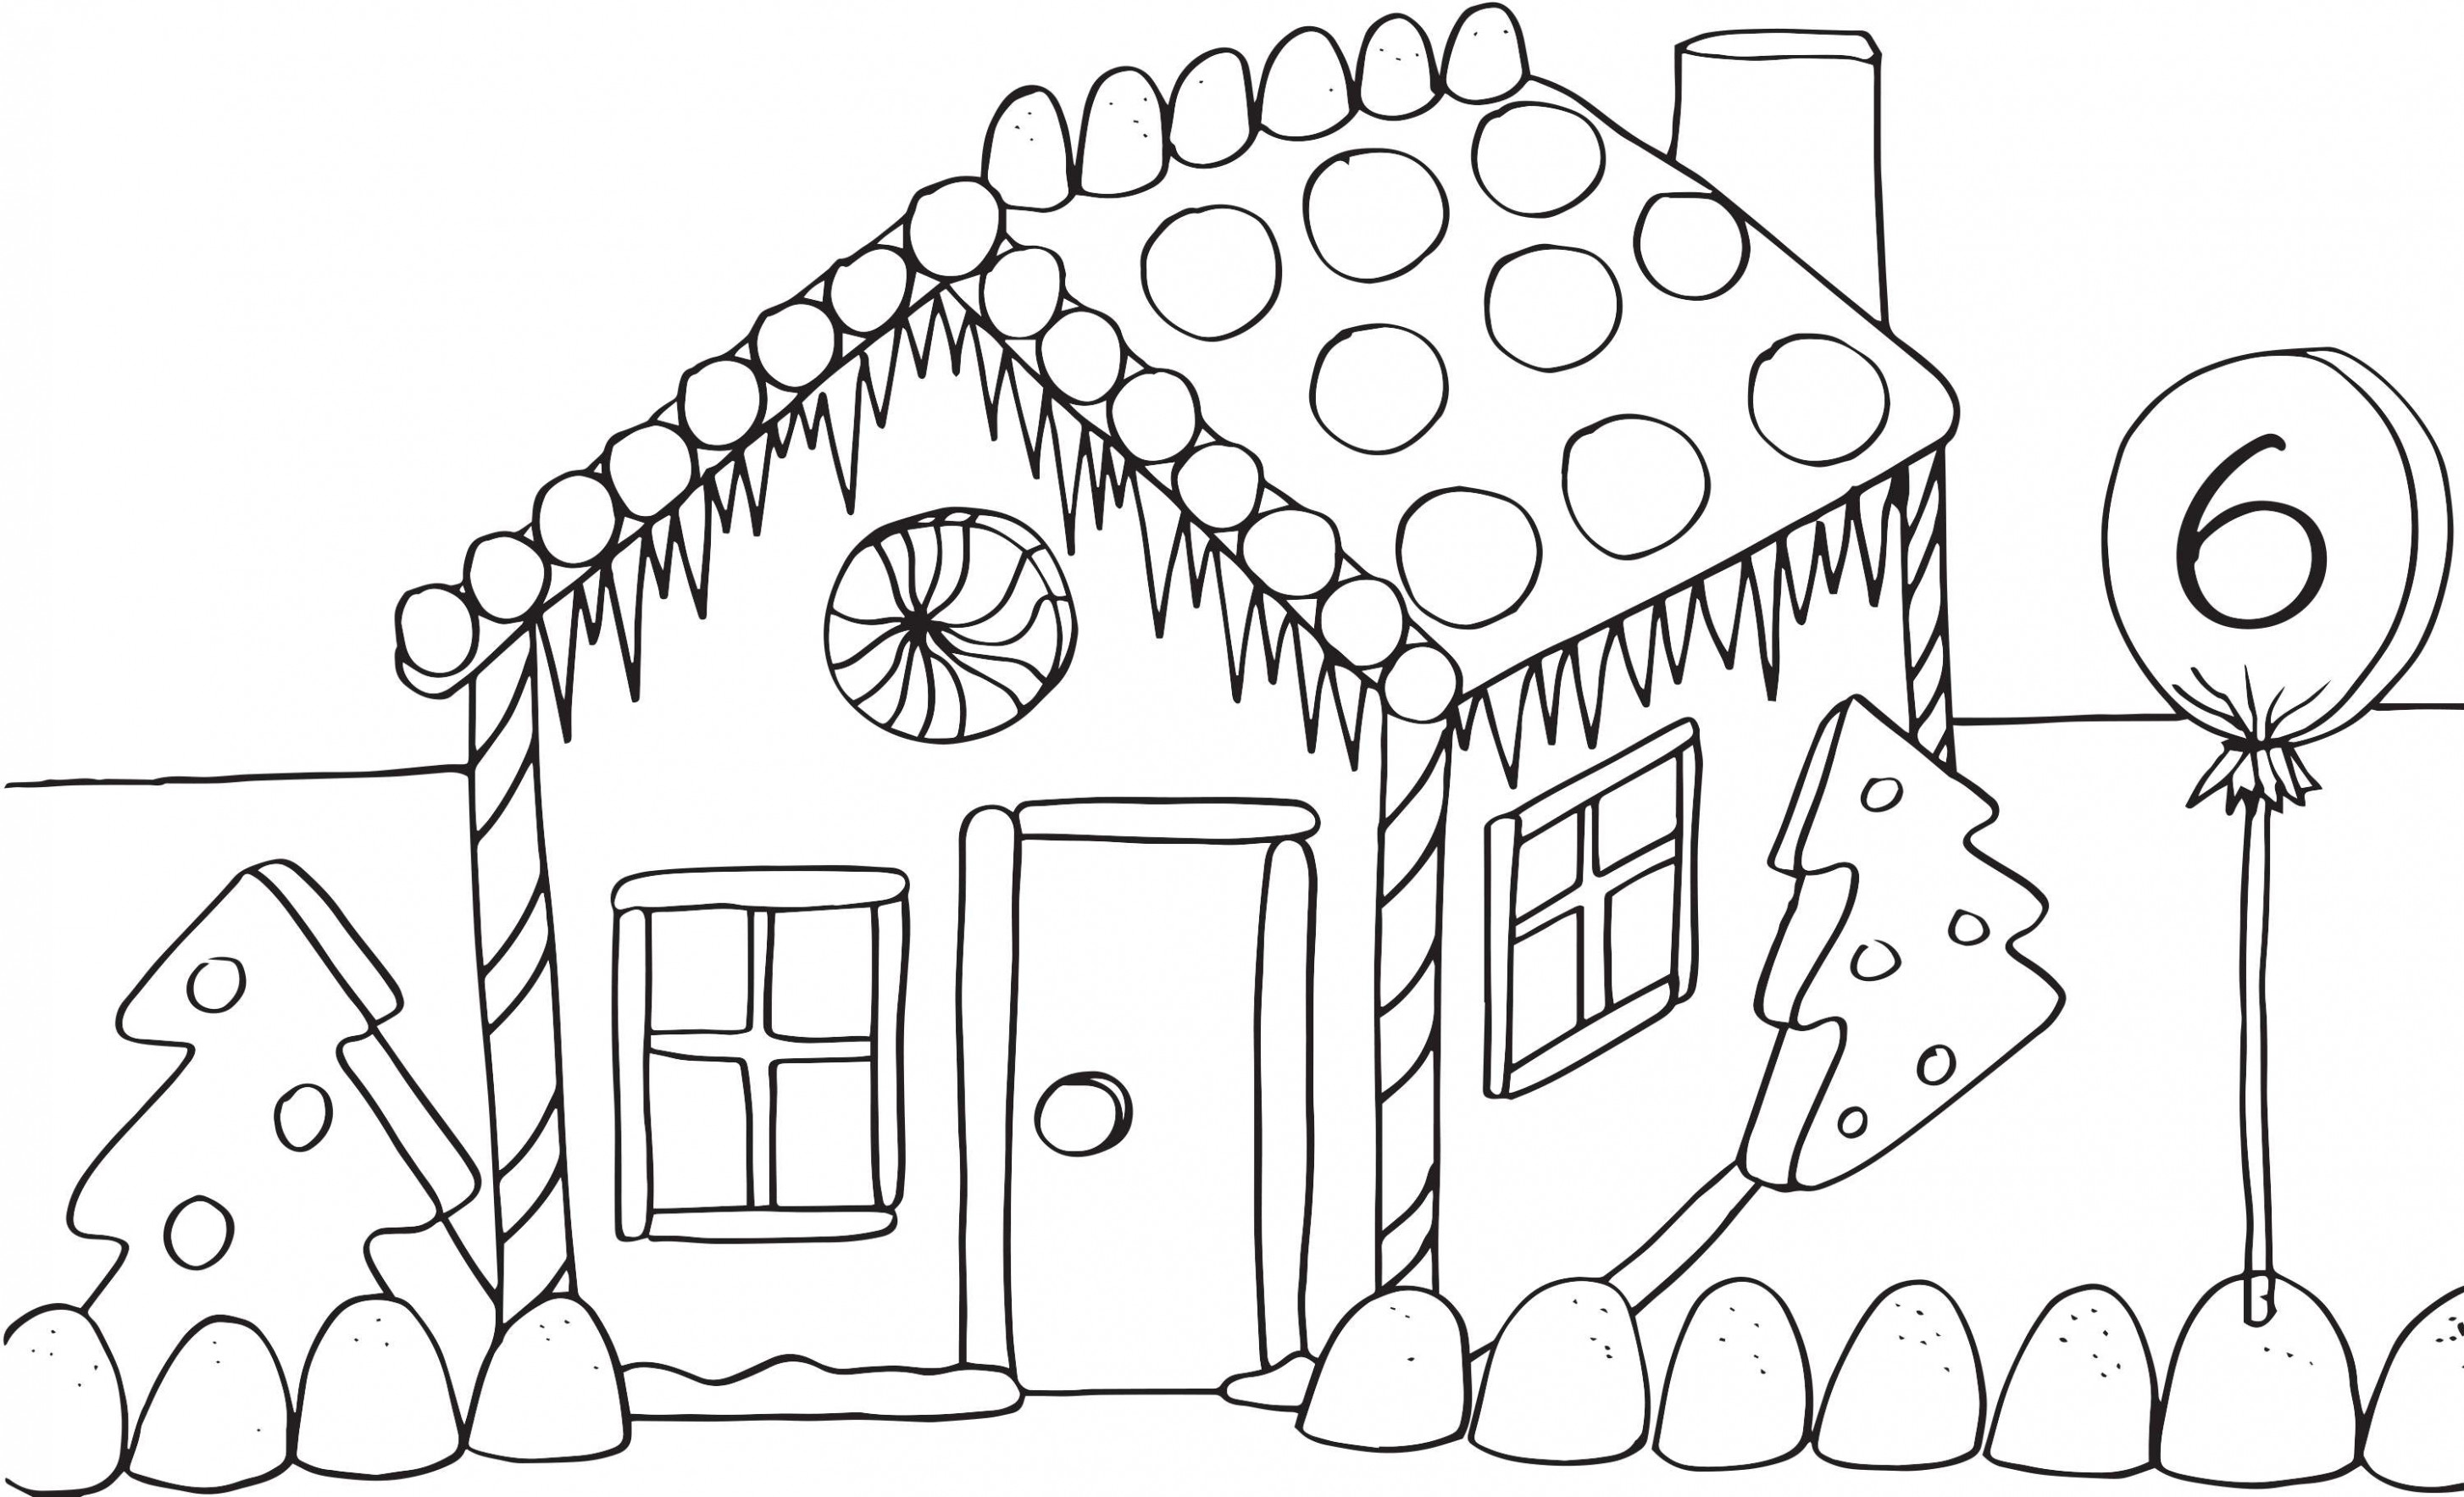 Luxury Free Christmas Coloring Pages Gingerbread House | Coloring Pages – Christmas Coloring Pages Gingerbread House